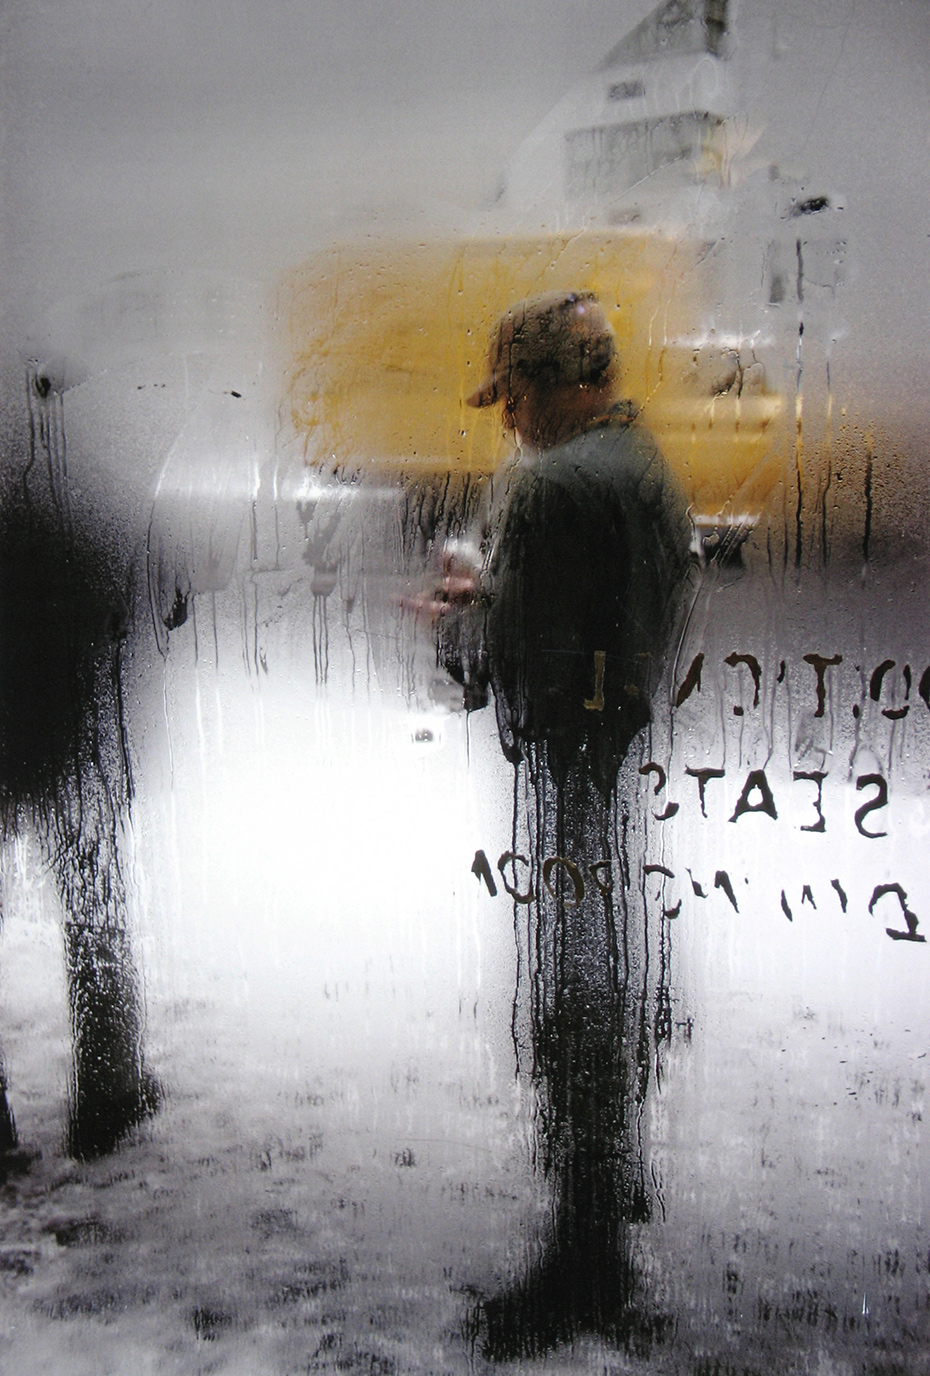 008-Photographer-Saul-Leiter